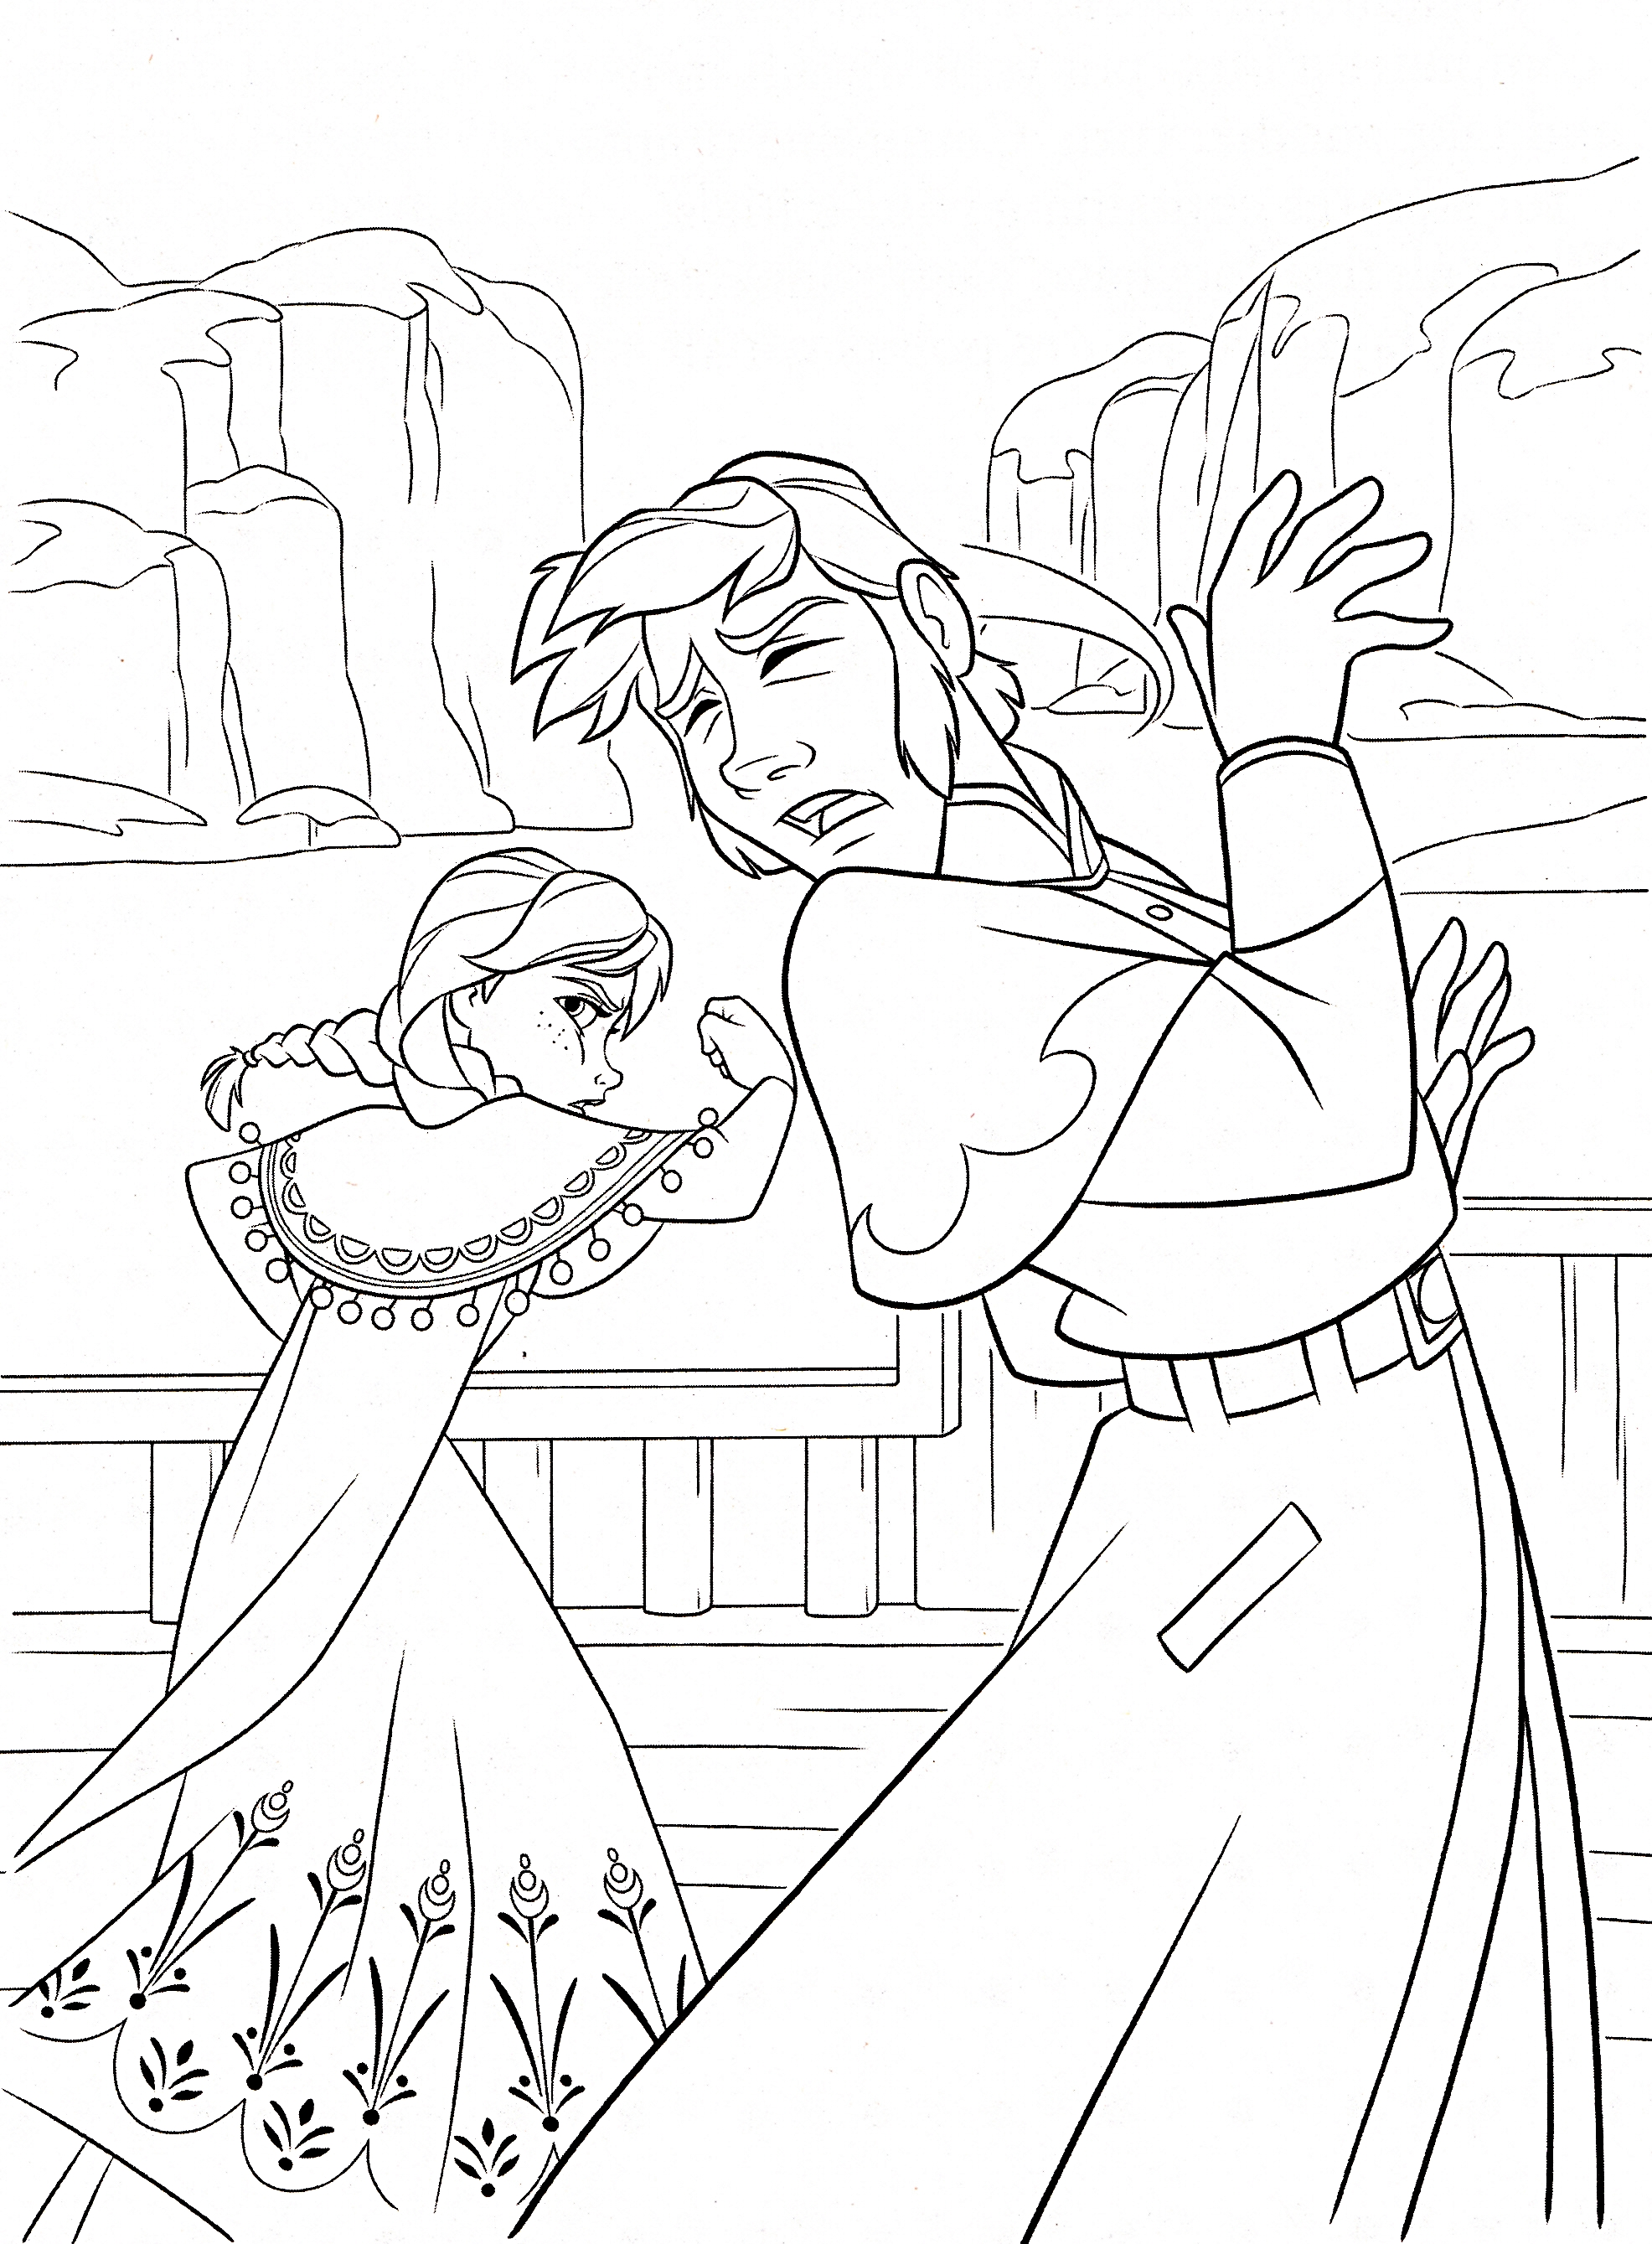 Disney Frozen Coloring Pages Hans : Walt disney coloring pages princess anna prince hans